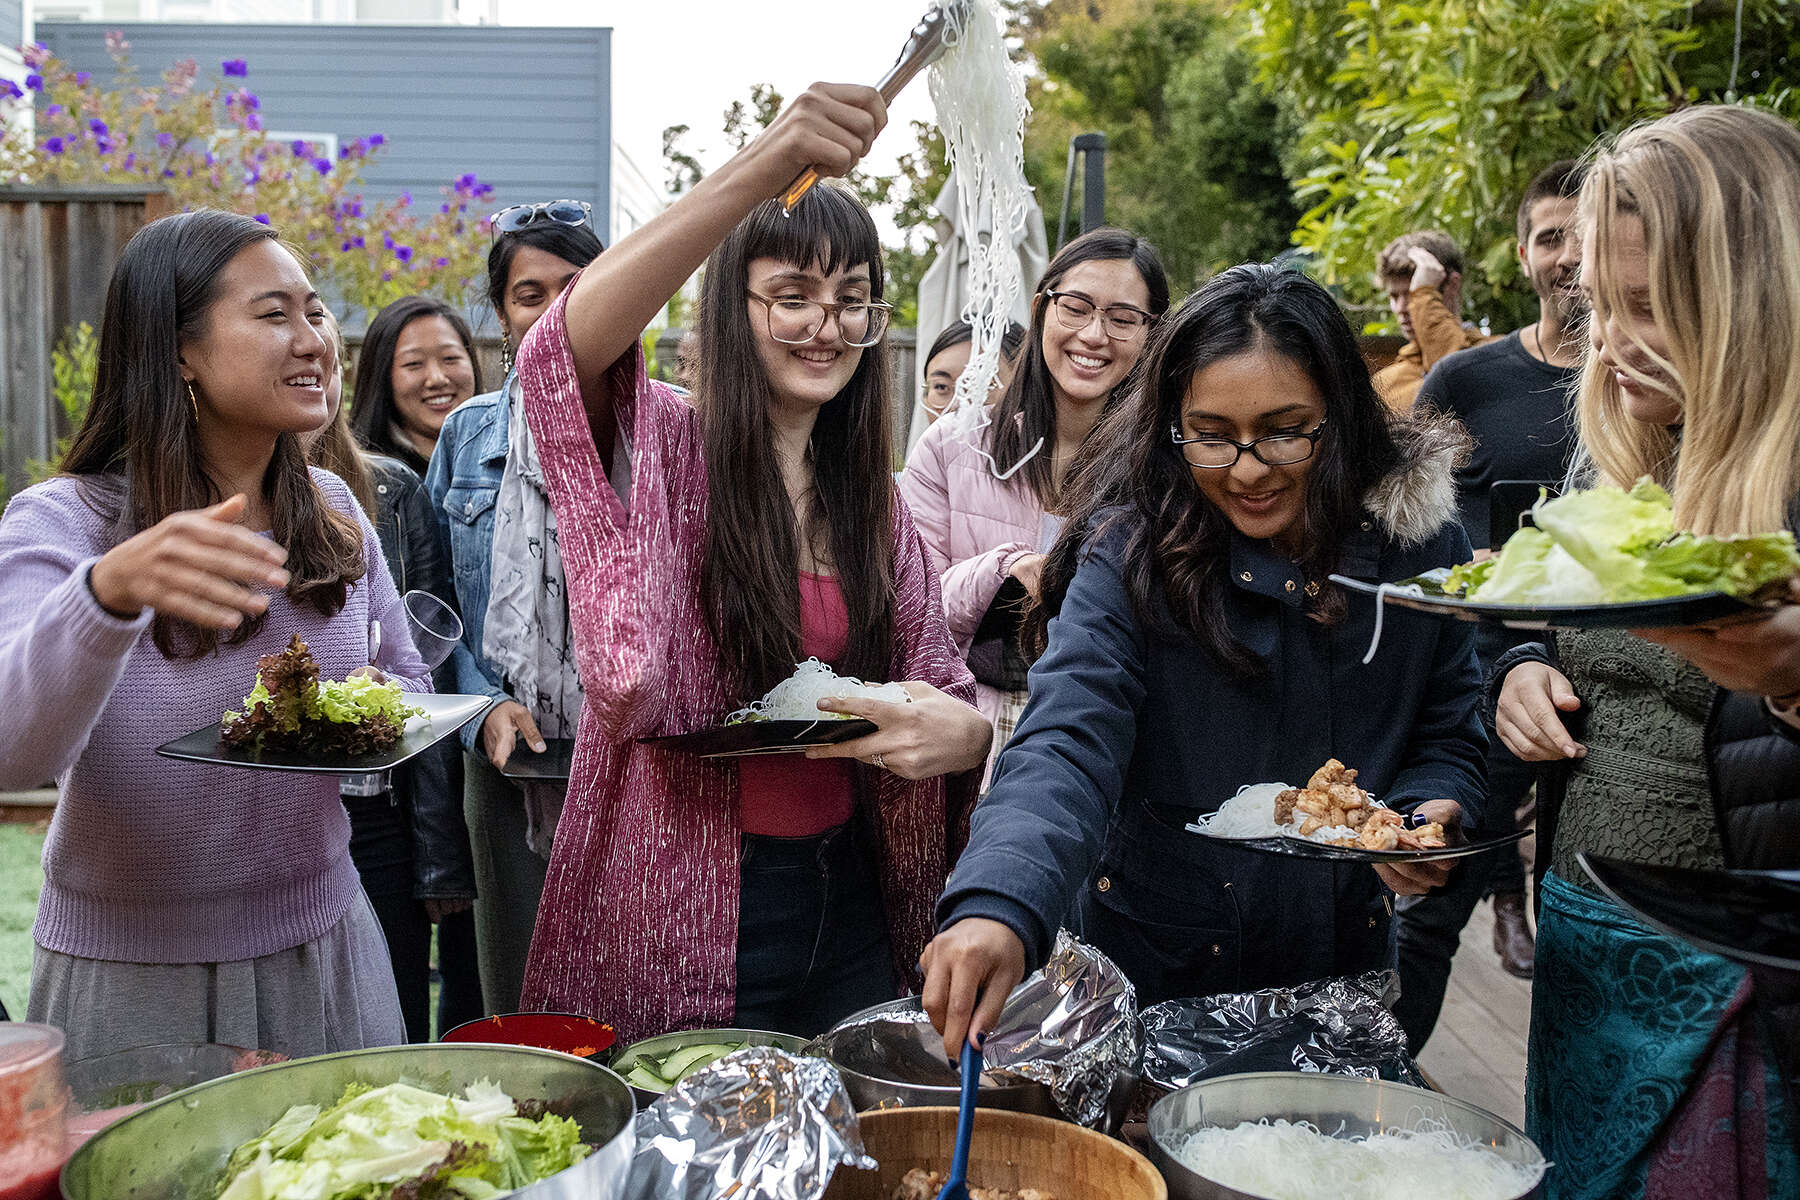 Violet Society members Lucille Zhao, Michelle Galemmo, Samanee Mahbub and  Amanda Crosby Rickman (left to right) help themselves to the meal during a dinner hosted for the organization at the office of the equity crowdfunding platform Wefunder  in San Francisco, Calif., on Wednesday, August 8, 2018. Wefunder lobbied congress to legalize equity crowdfunding, allowing privately held companies to raise investment from everyday people, so-called unaccredited investors. Regulation Crowdfunding began on May 16, 2016.  The company regular hosts dinner parties for members of the tech community at their office, which also serves as the home of a few employees. The Violet Society, described as a {quote}startup sisterhood,{quote} is a 12-week part-time summer program for young women in the tech industry who want to build startups. CONTACTS: Nick Tomatello Wefunder CEOnick@wefunder.com508-308-7226Shriya Nevatia Violet Society founderSneva831@gmail.com518-338-8505Michelle Galemmomgalemmo@gmail.com267-625-6141Samanee Mahbubsamaneezm@gmail.com401-286-0663Lucille ZhaoLucille.zhao@gmail.com312-866-7366Amanda Crosby Rickmanacrosbyrickman@gmail.com510-359-2397